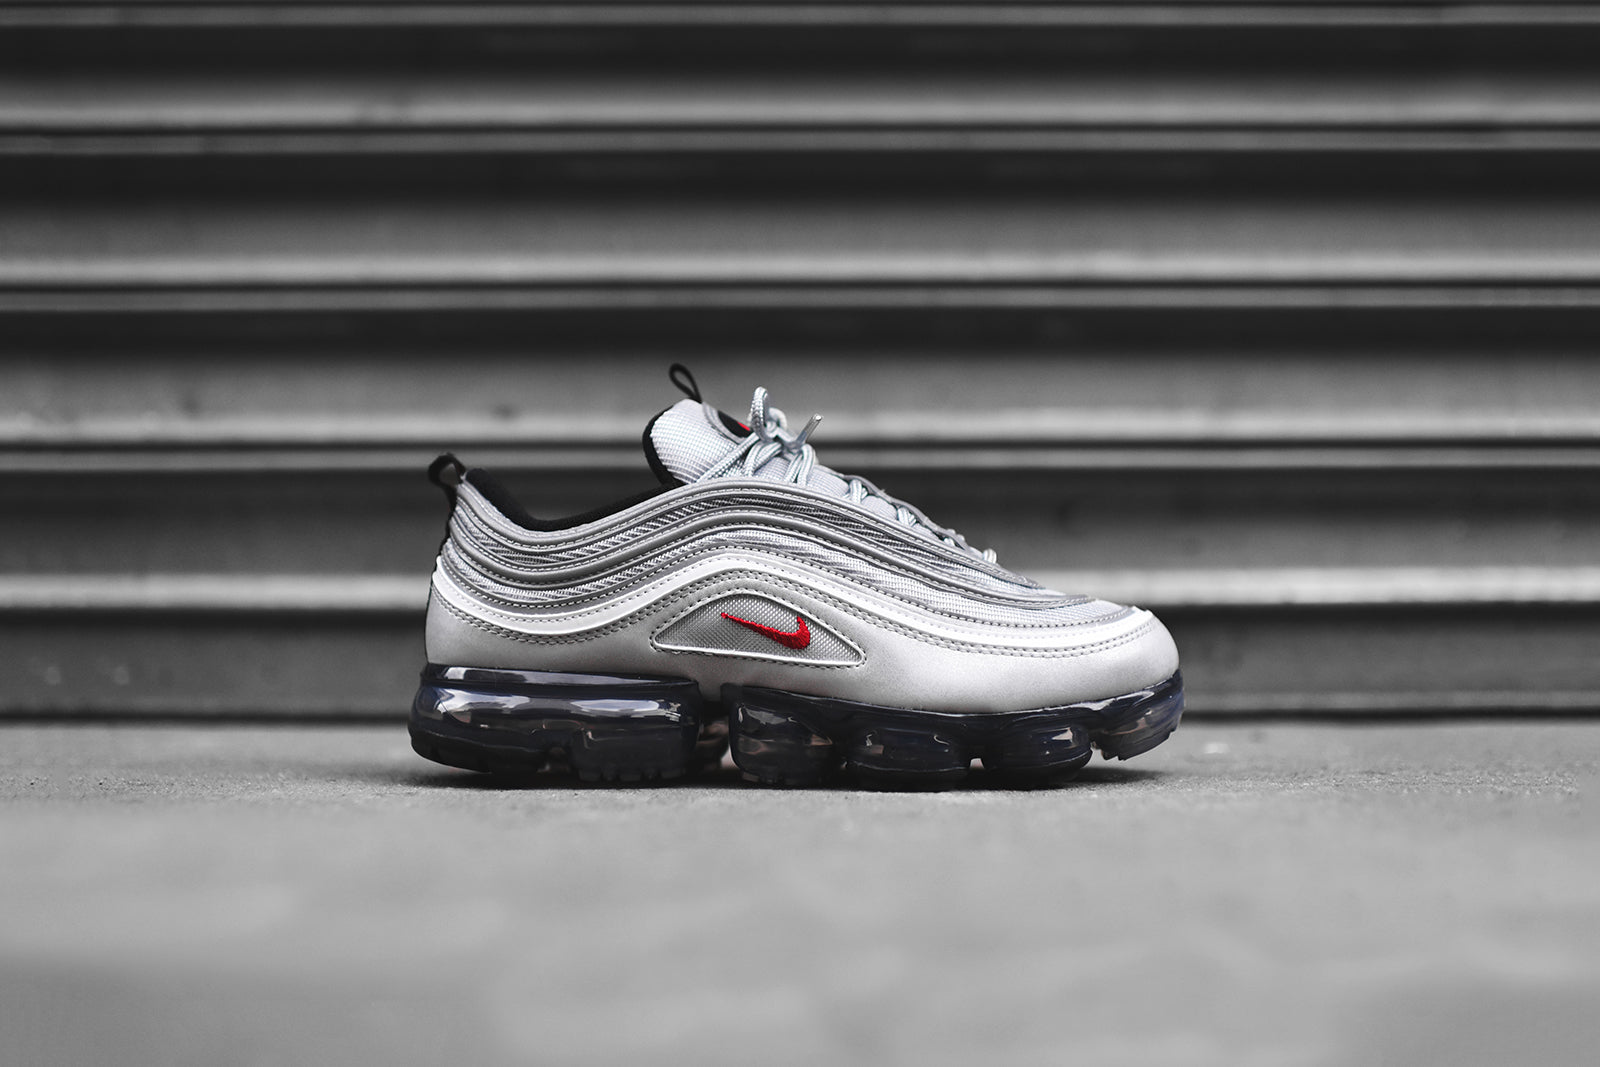 competitive price e2f34 c3c94 Nike Air VaporMax  97 - Silver Bullet. April 12, 2018. -4. -1